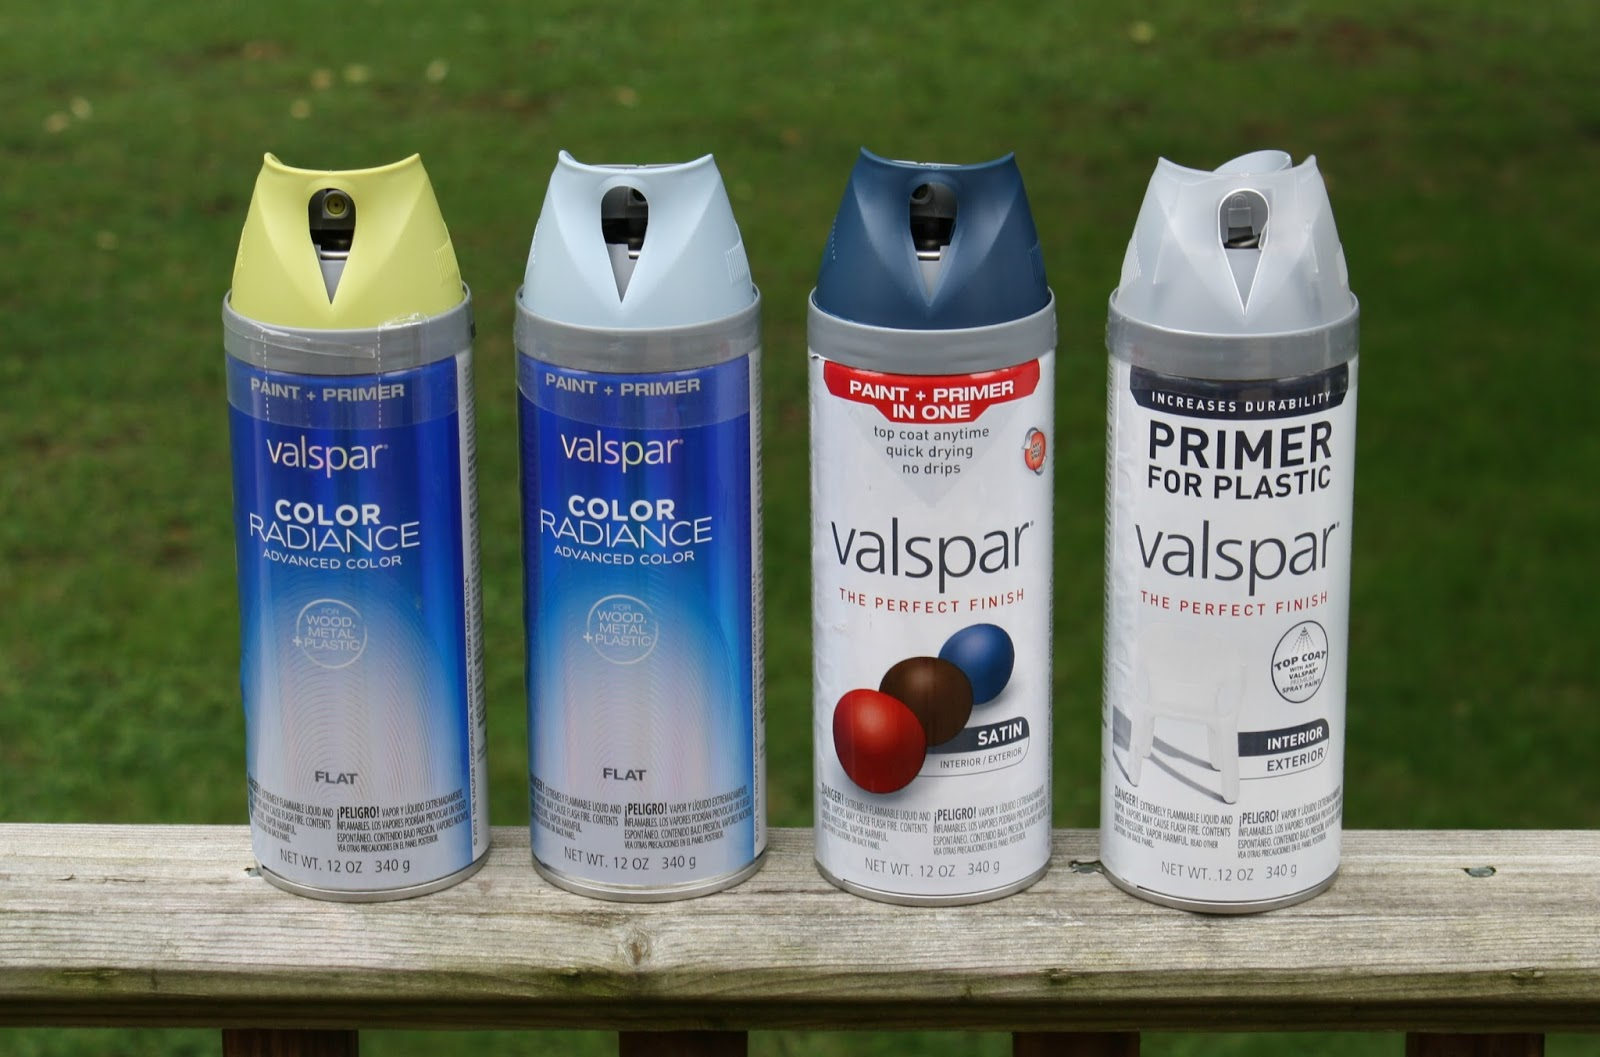 Charming Valspar Color Radiance Spray Paint Part - 10: The Lime Green And Baby Blue Are From The Valspar Color Radiance Line. They  Are Both Paint And Primer, And Theyu0027re Also Good For Plastics.